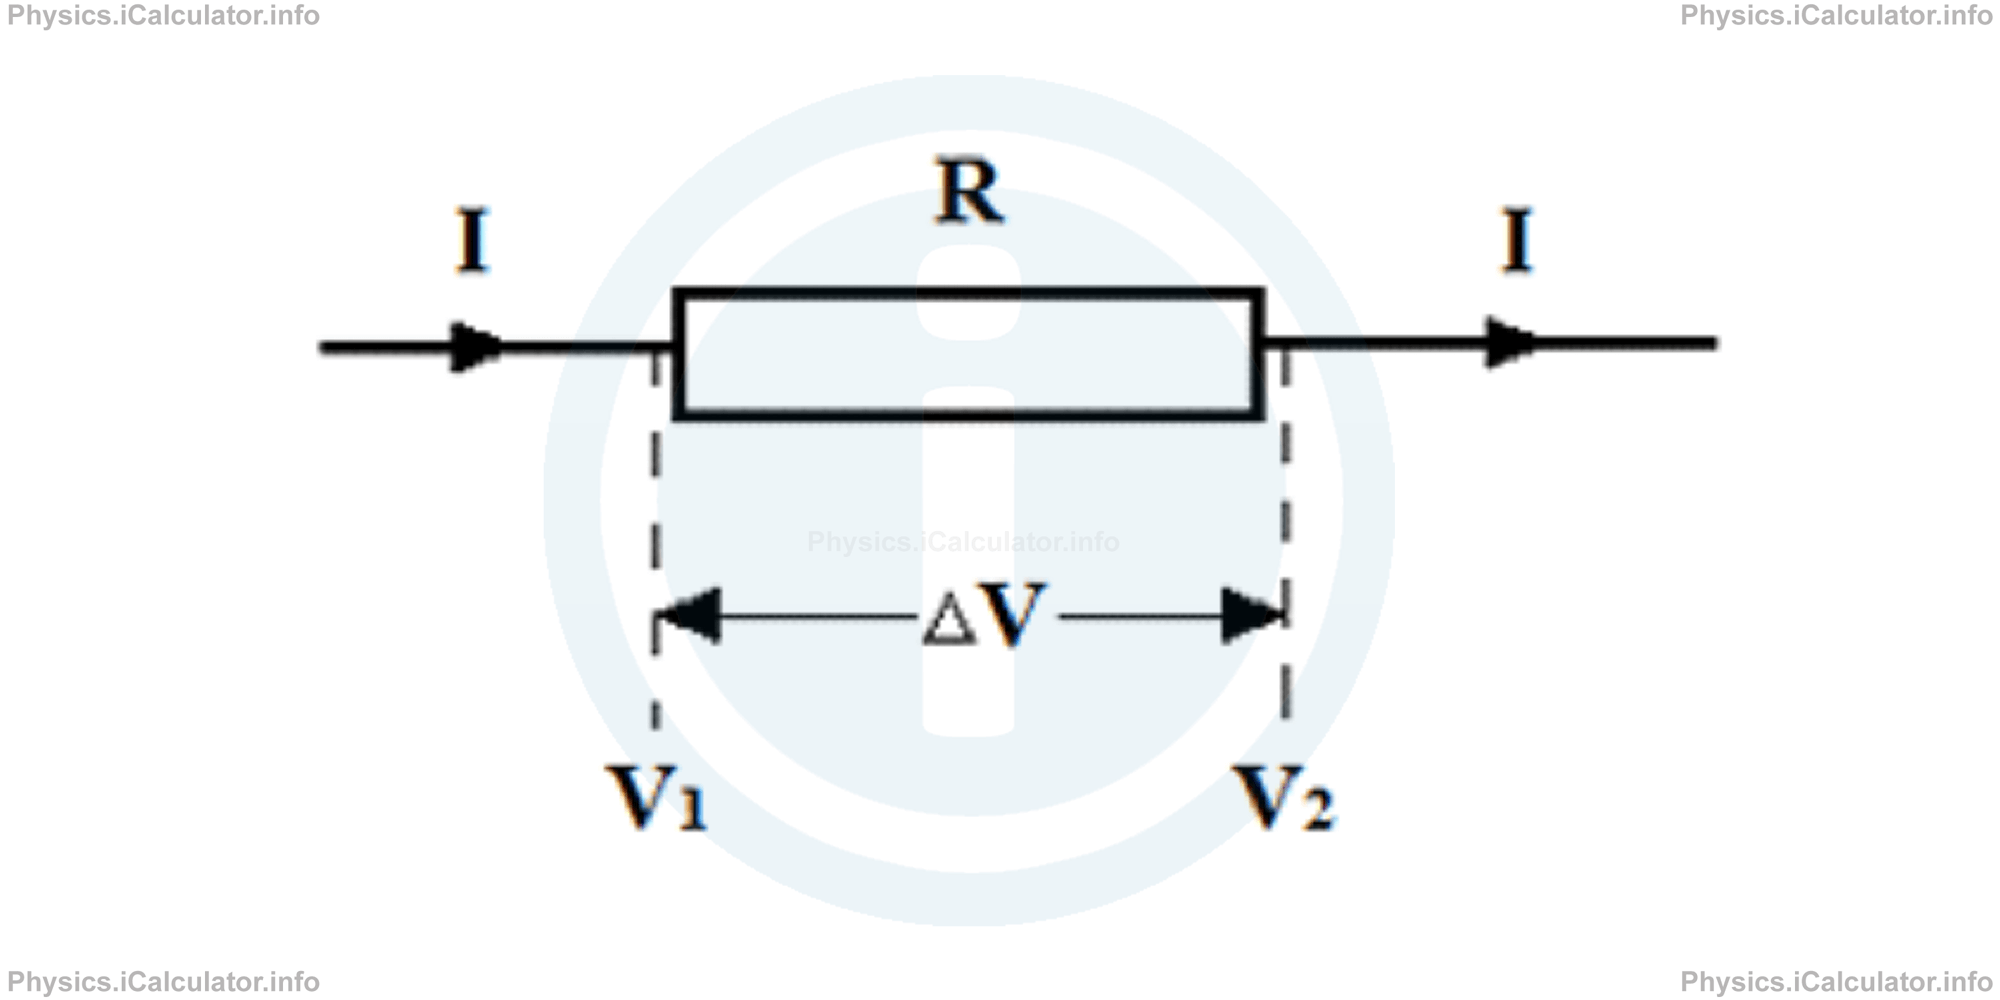 Physics Tutorials: This image provides visual information for the physics tutorial Electric Potential Difference (Voltage). Ohm's Law